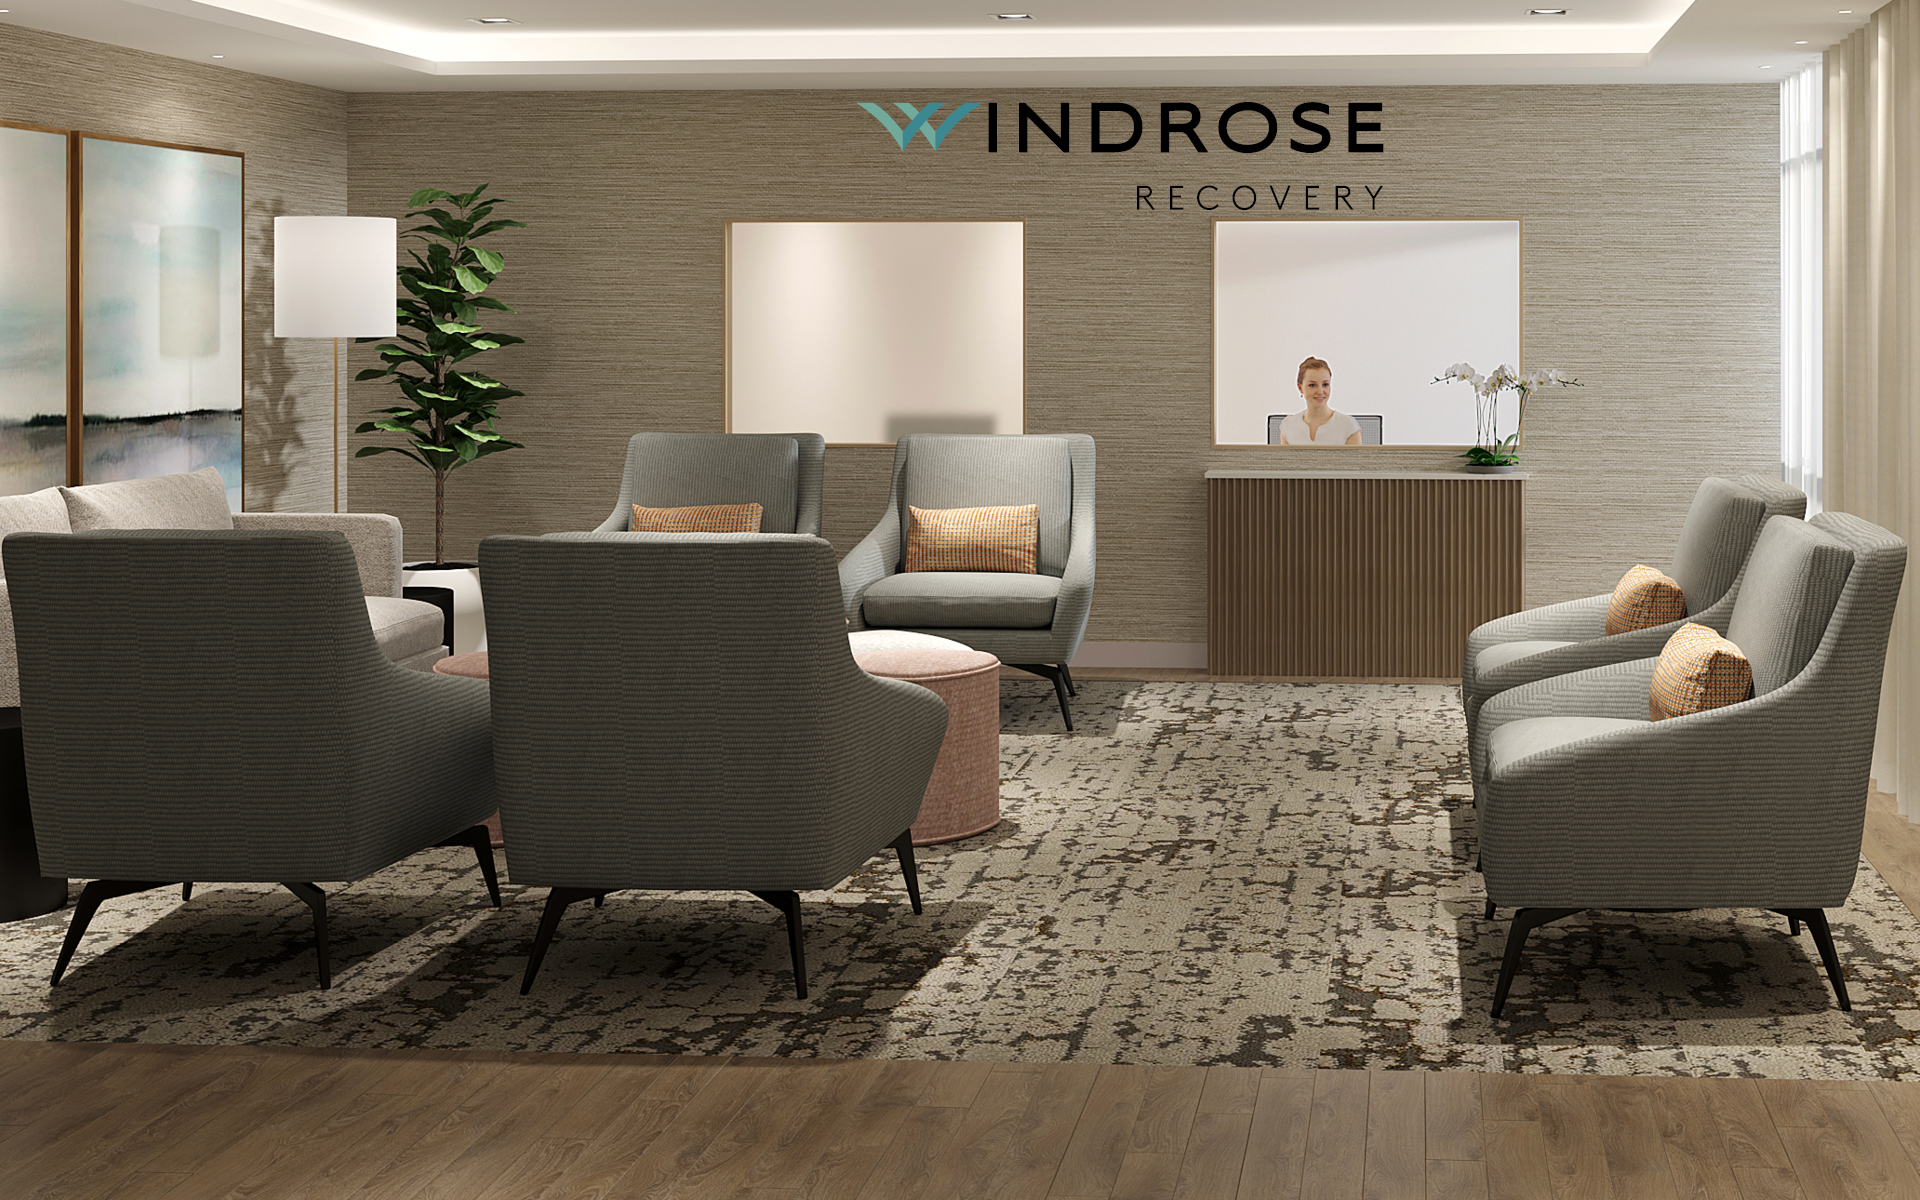 Windrose Recovery - PHOTO - 2020 - WEBSITE - LOBBY with LOGO on Wall